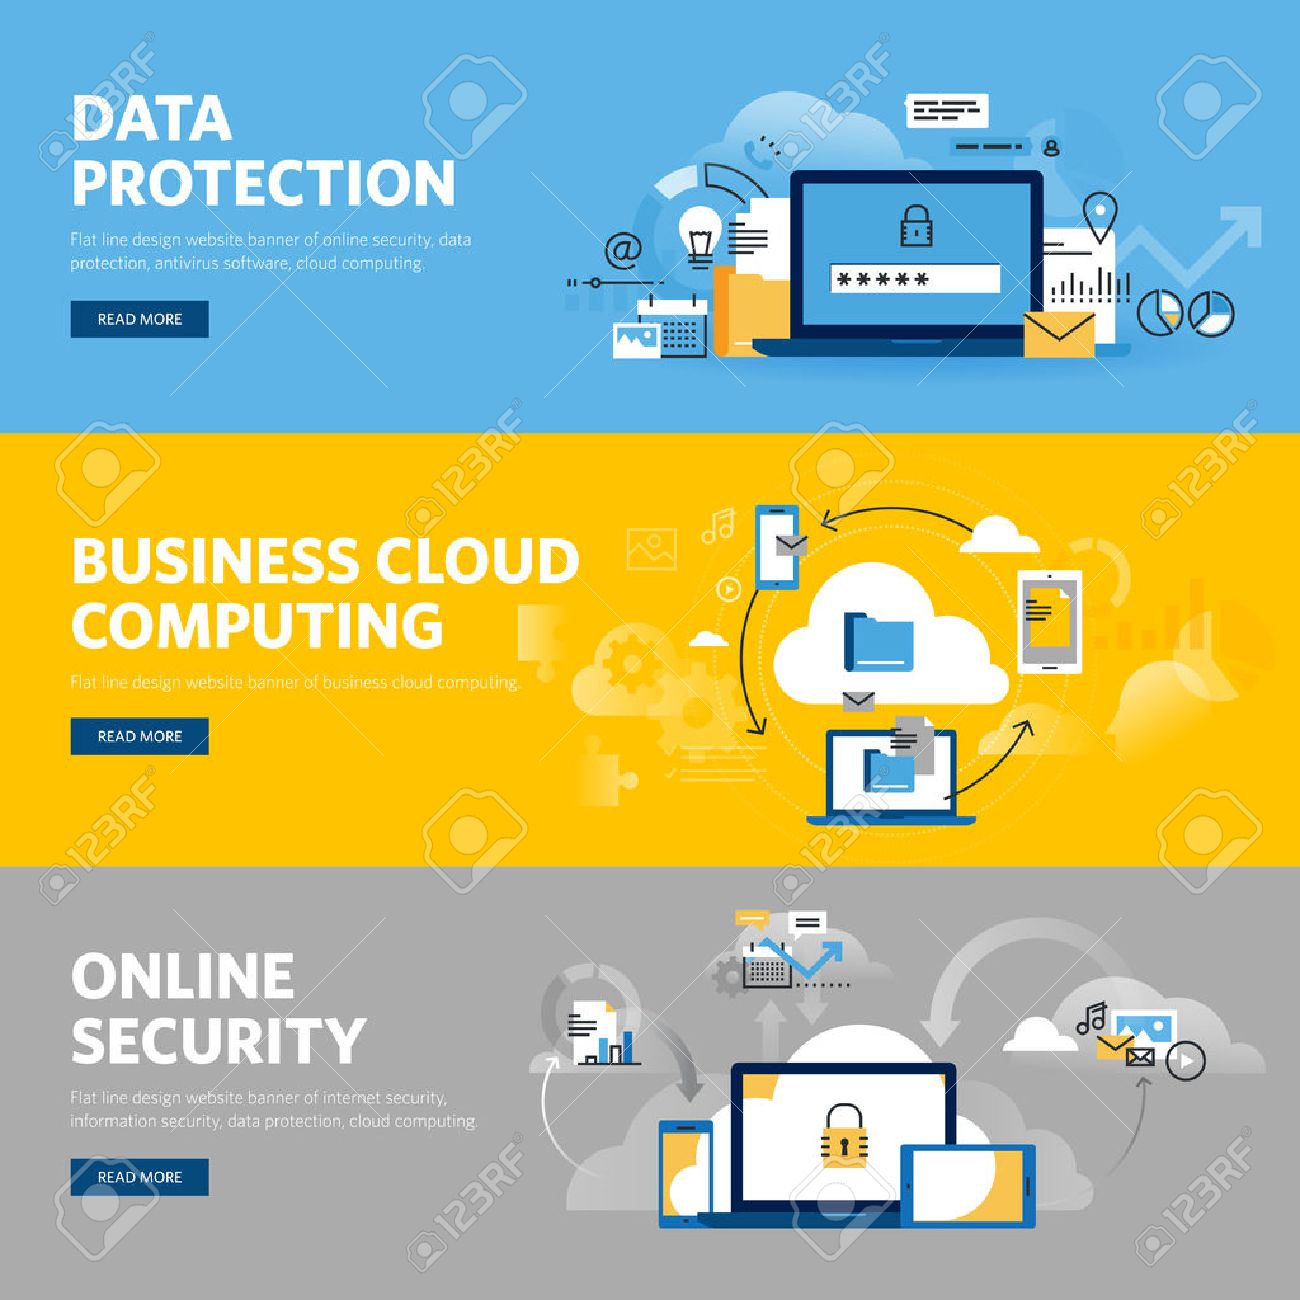 Set of flat line design web banners for data protection, internet security, antivirus software and services, business cloud computing. Vector illustration concepts for web design, marketing, and graphic design. - 54614319